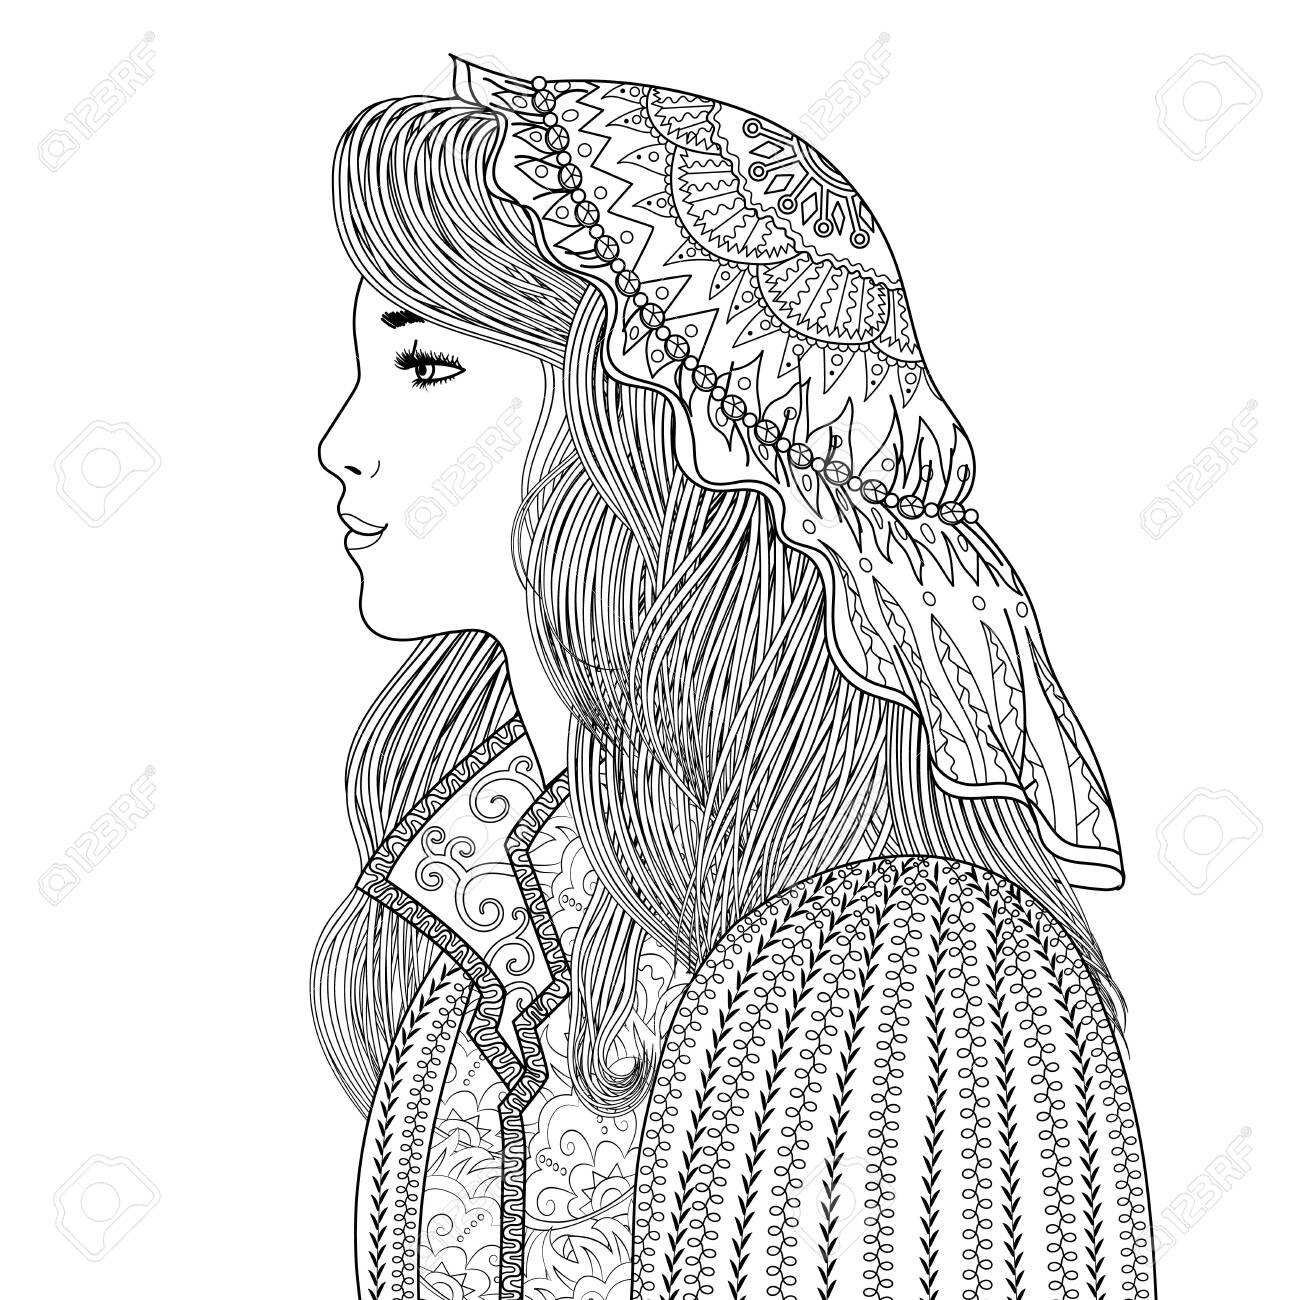 Coloring page for adults with beautiful fantasy lady in medieval dress. Coloring book with mysterious princess profile. Vector illustration - 140902223